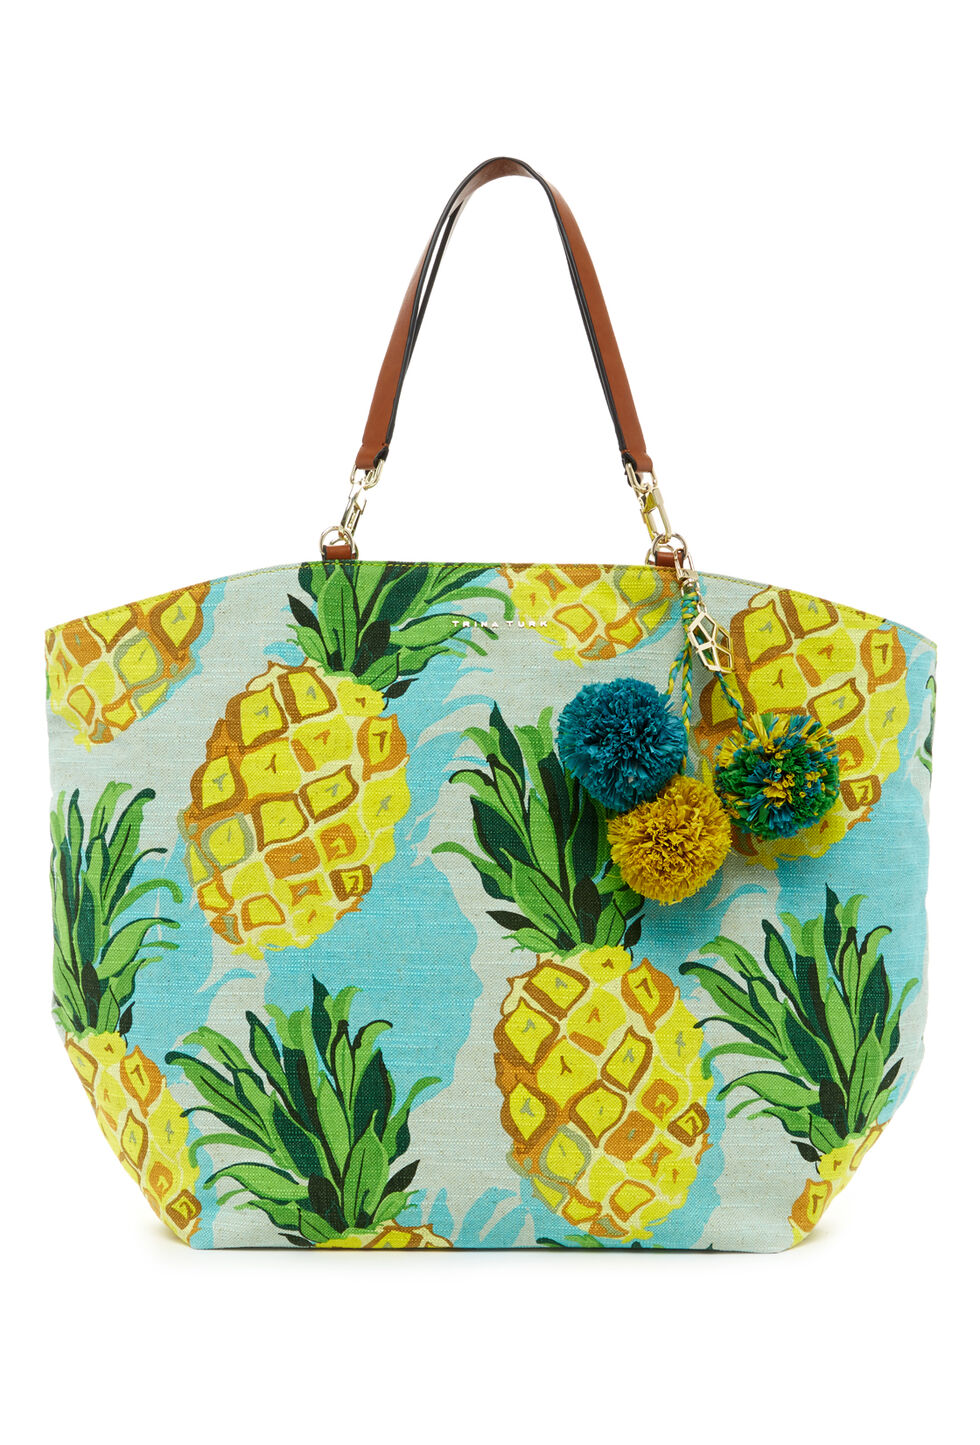 Trina Turk Sunkissed Tote - Yellow - Size O/S